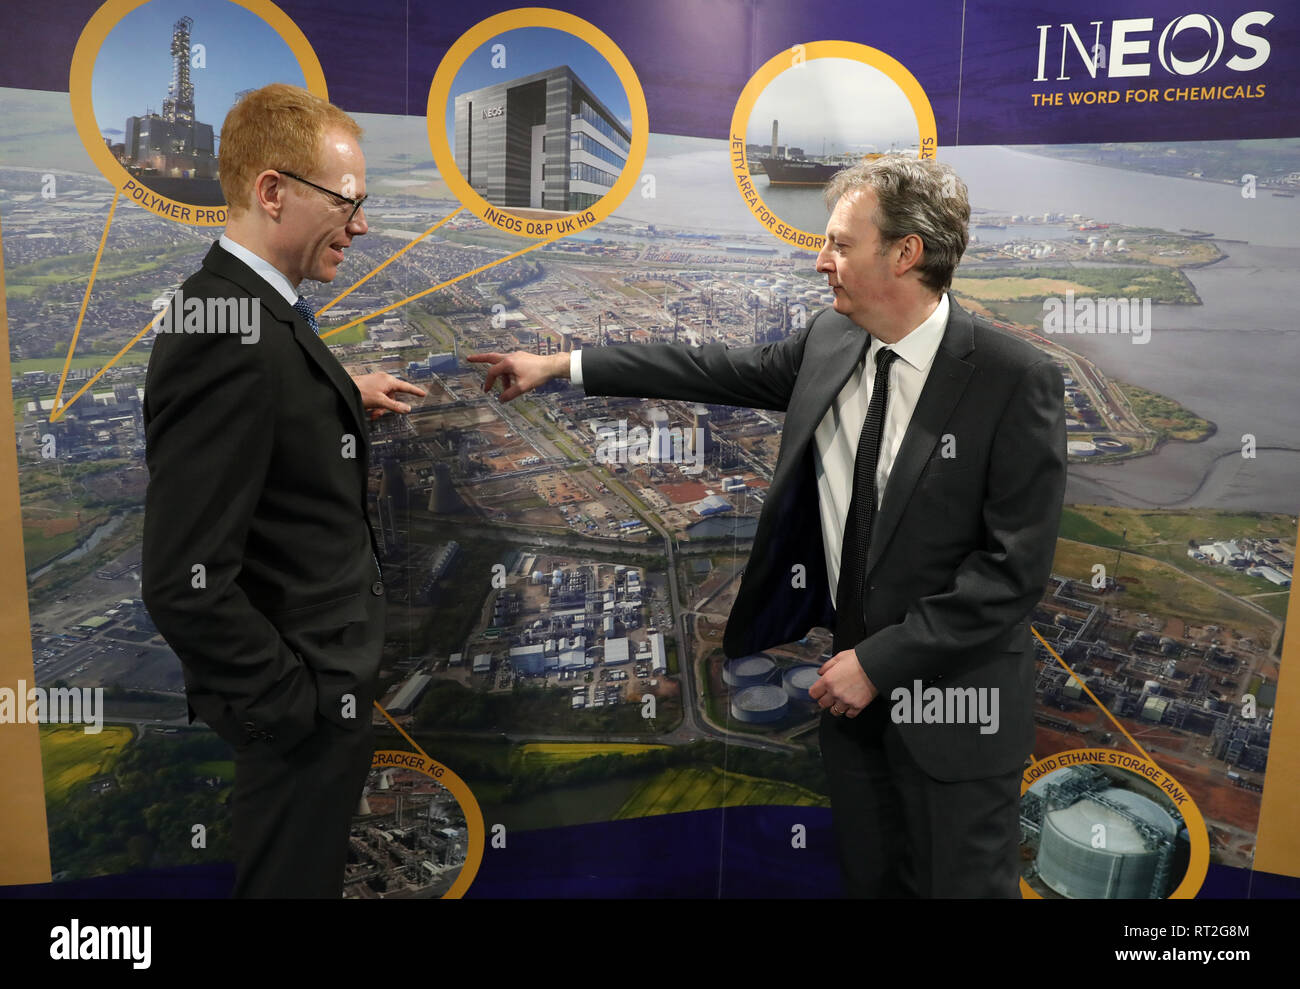 Andrew Gardner, chief executive of Ineos Forties Pipeline System (FPS) and Tobias Hannemann (left), chief executive of Ineos O&P UK at INEOS Grangemouth headquarters after the company made an investment announcement. - Stock Image